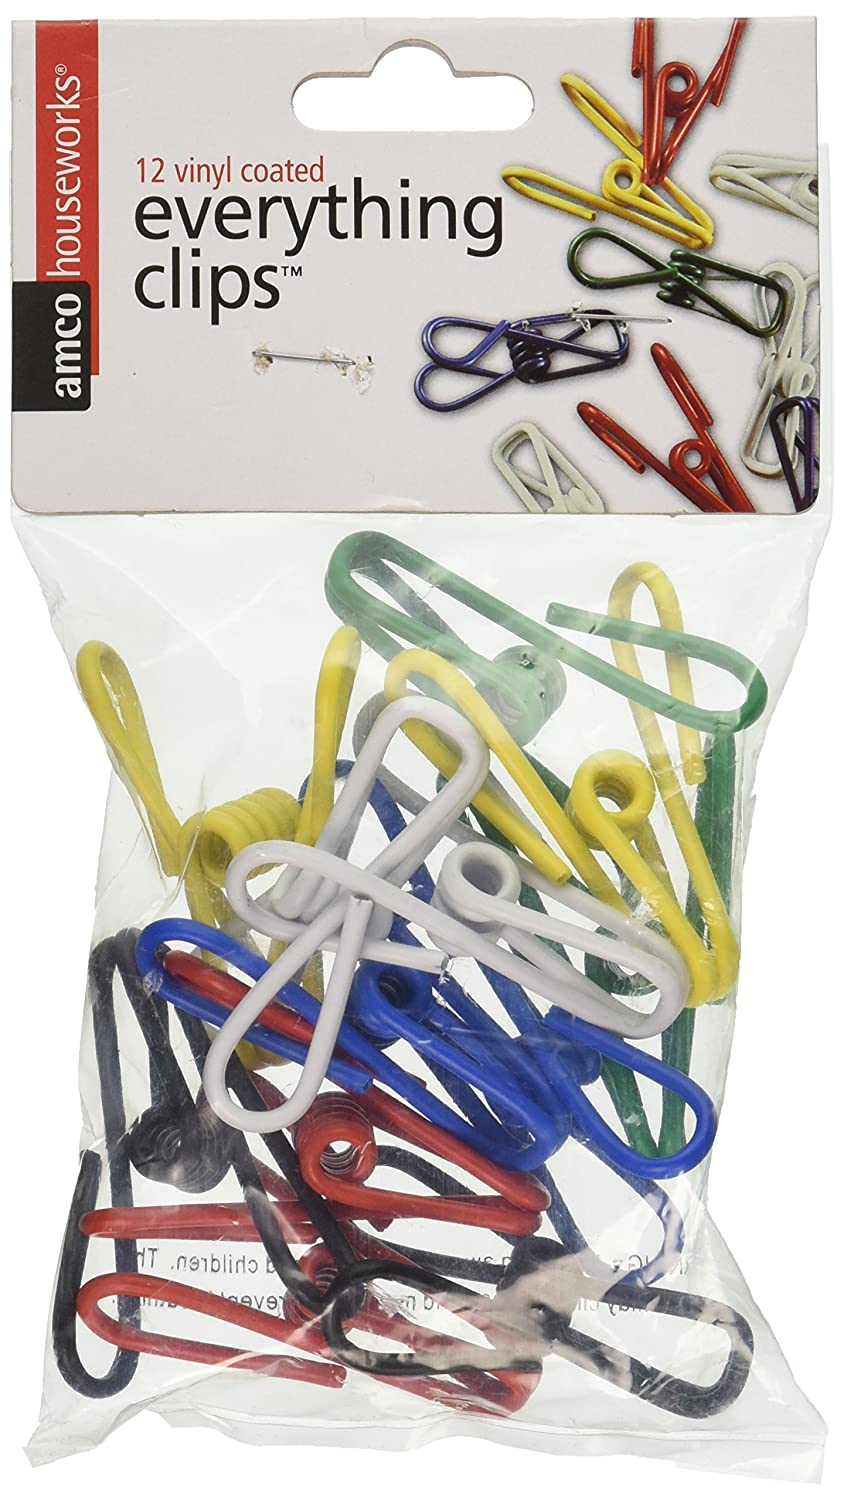 Amco Houseworks Multi-purpose Colorful Metal Clips Holders, 12 Pack, Multicolored (Discontinued by Manufacturer)